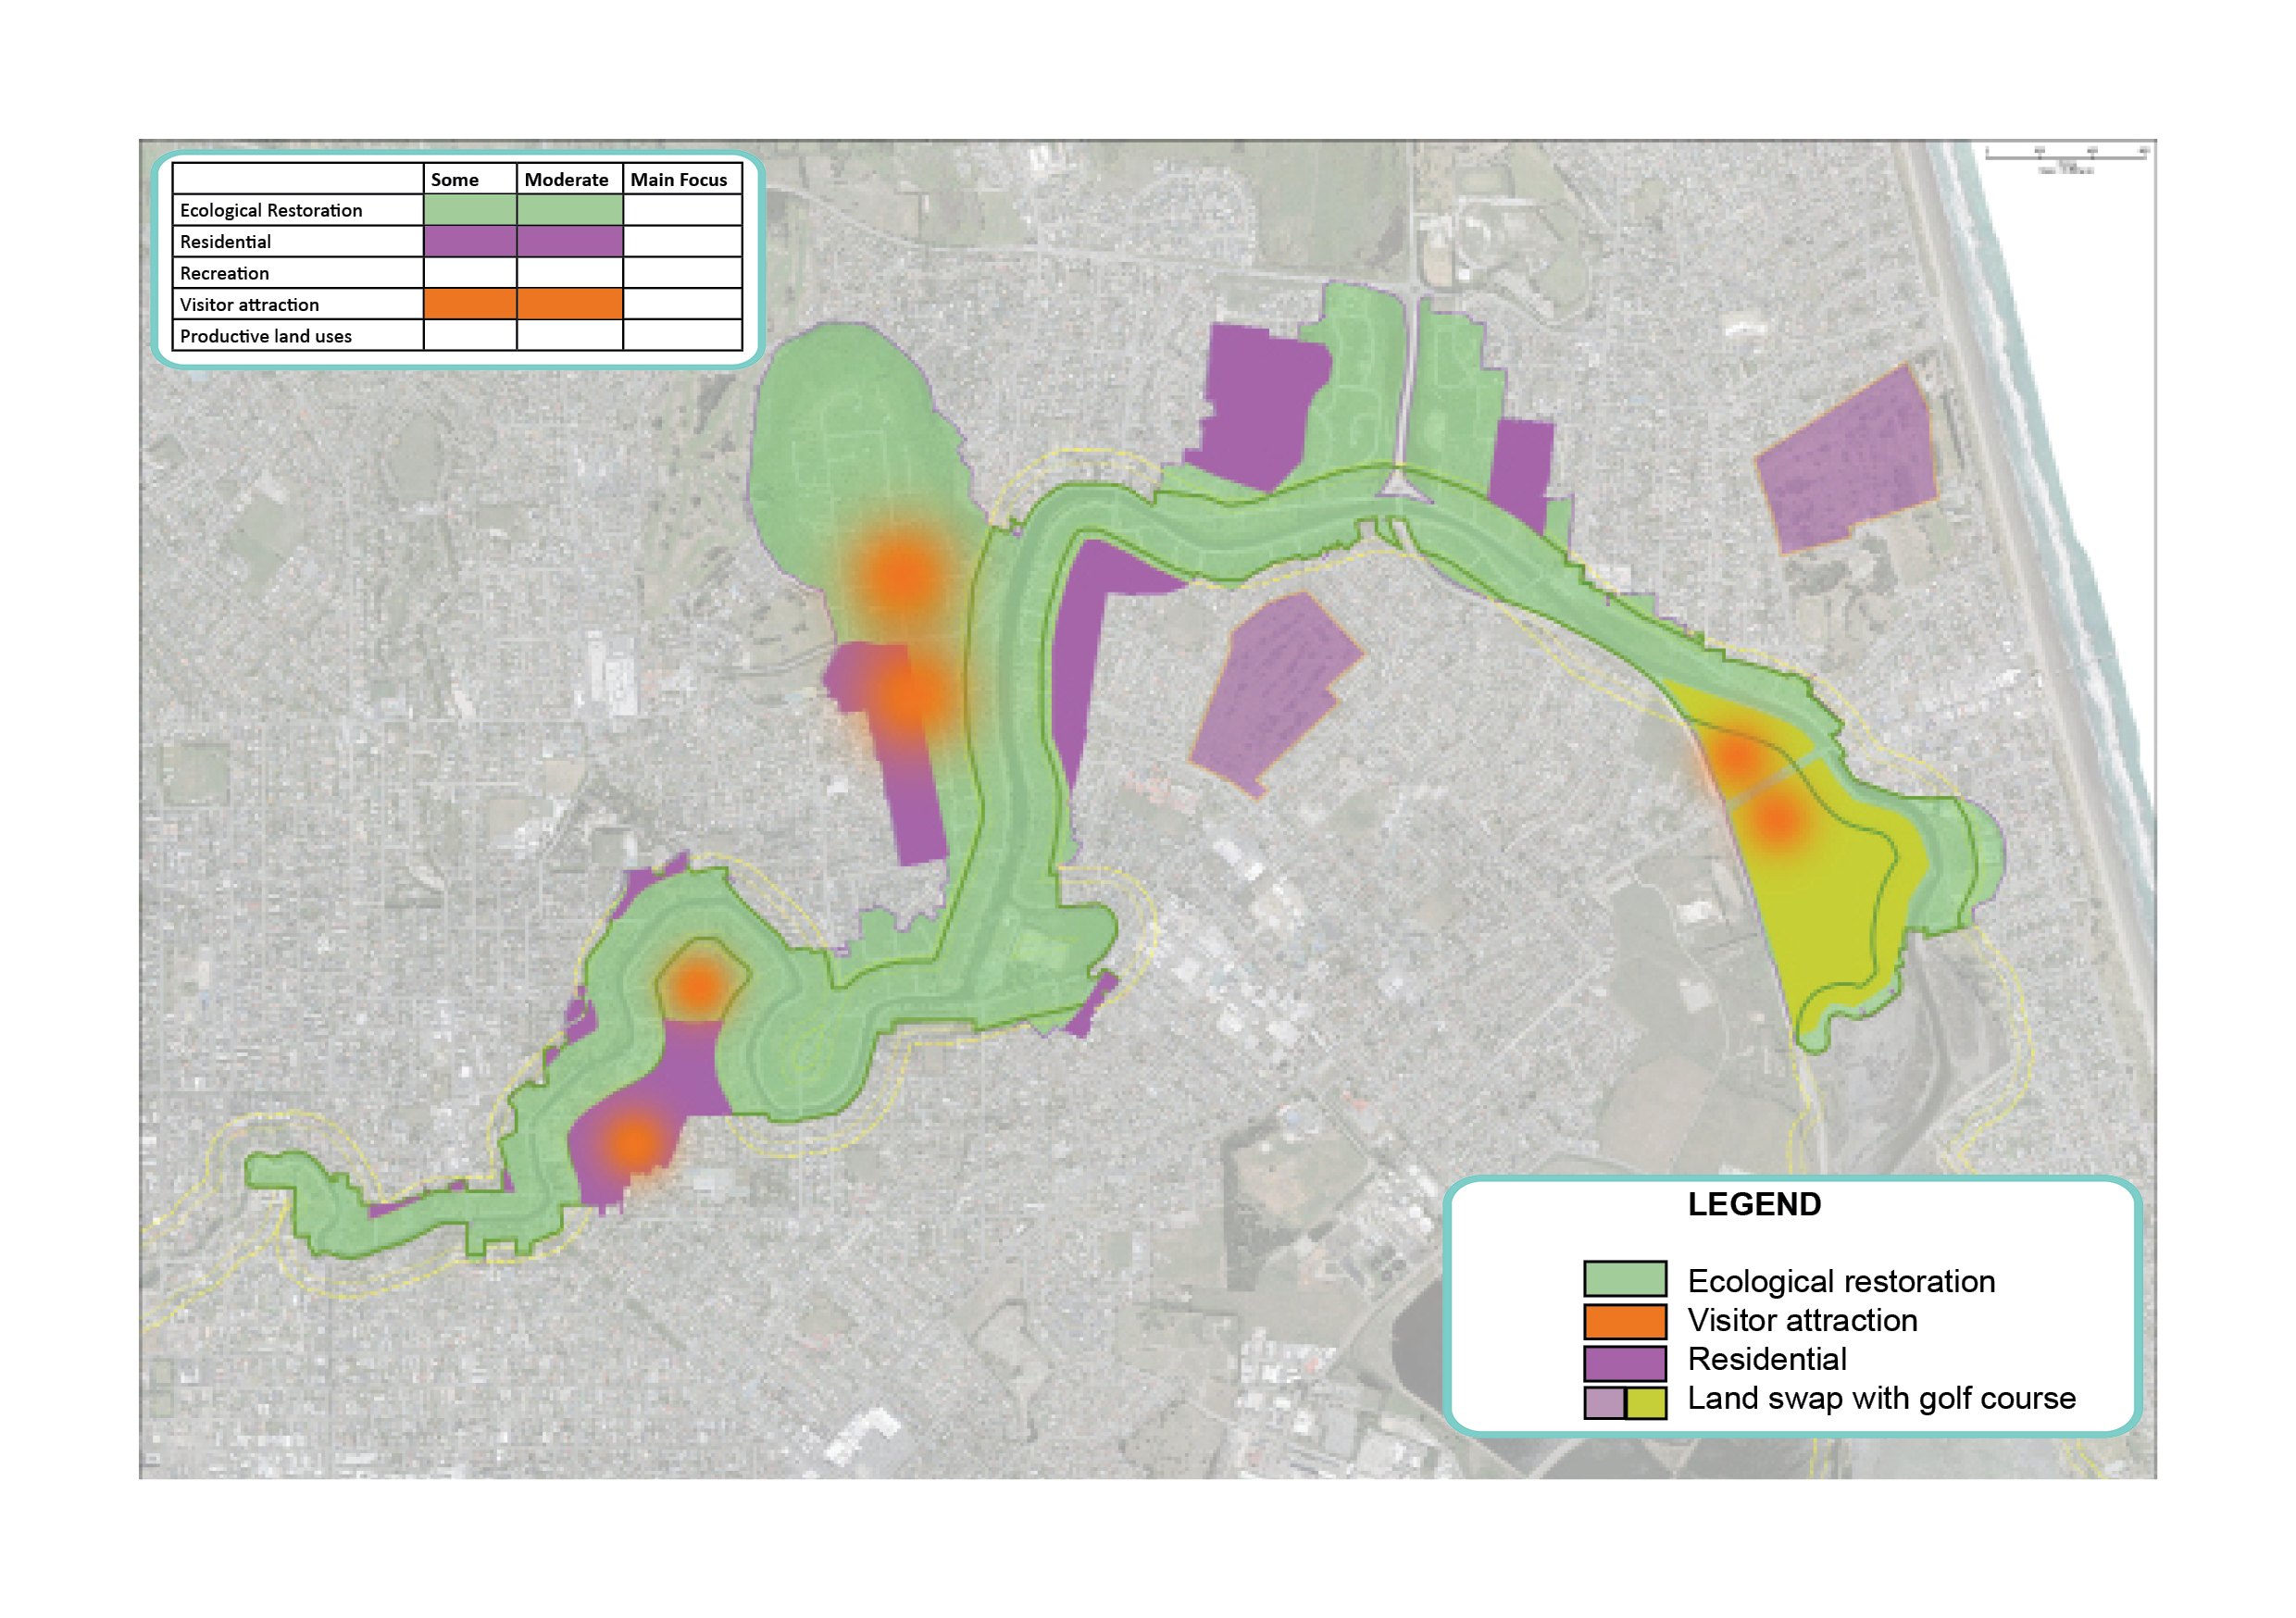 map showing potential areas for residential, visitor attraction and ecological restoration.